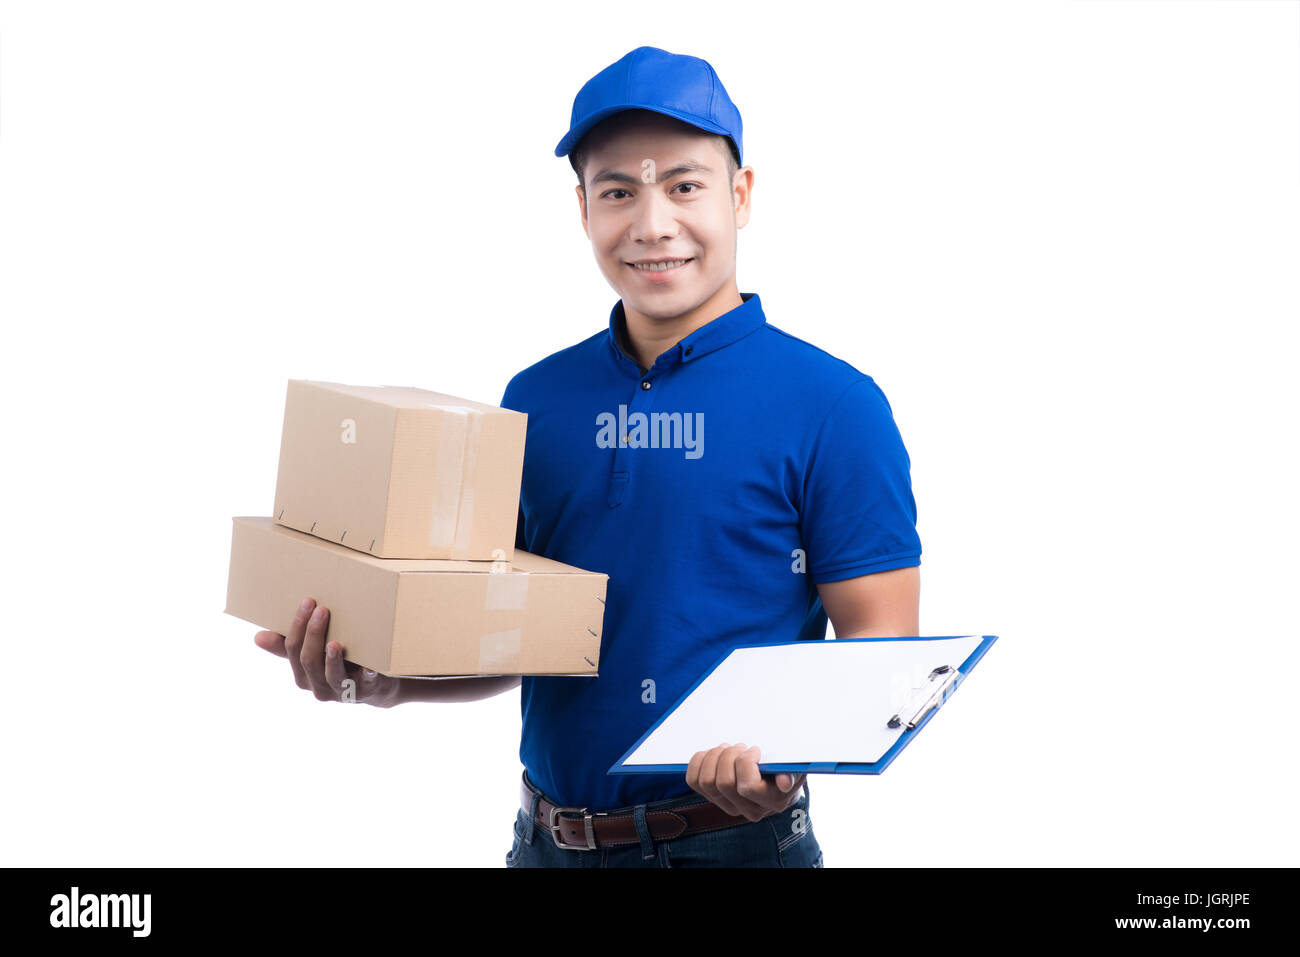 Smiling young asian salesman with parcel and clipboard against a white background - Stock Image